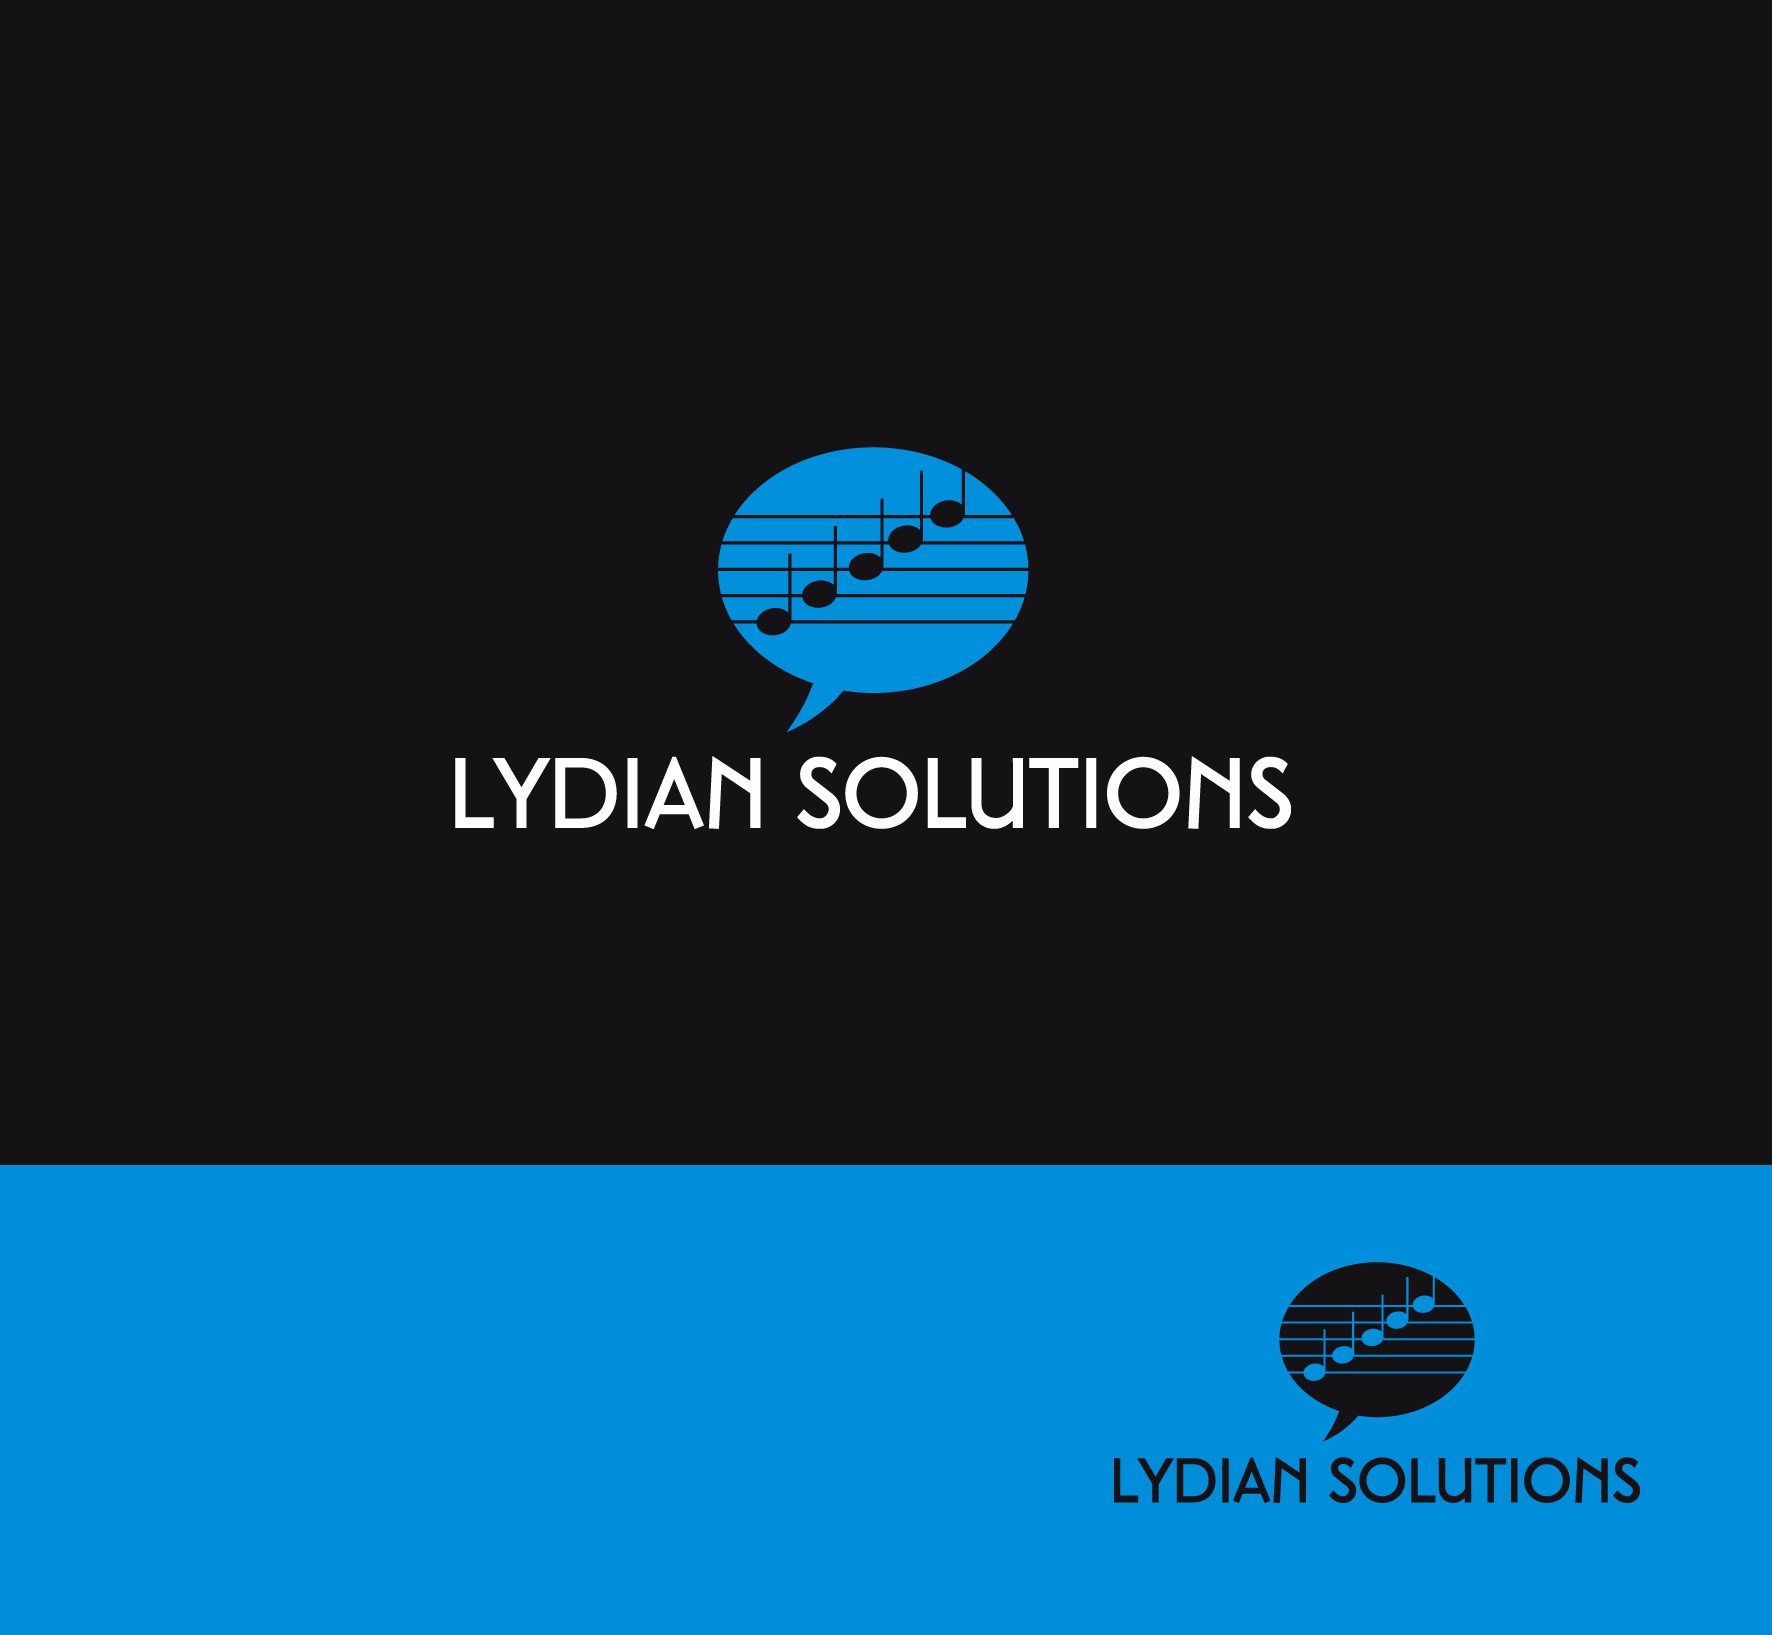 Logo Design by luna - Entry No. 45 in the Logo Design Contest Fun Logo Design for Lydian Solutions.